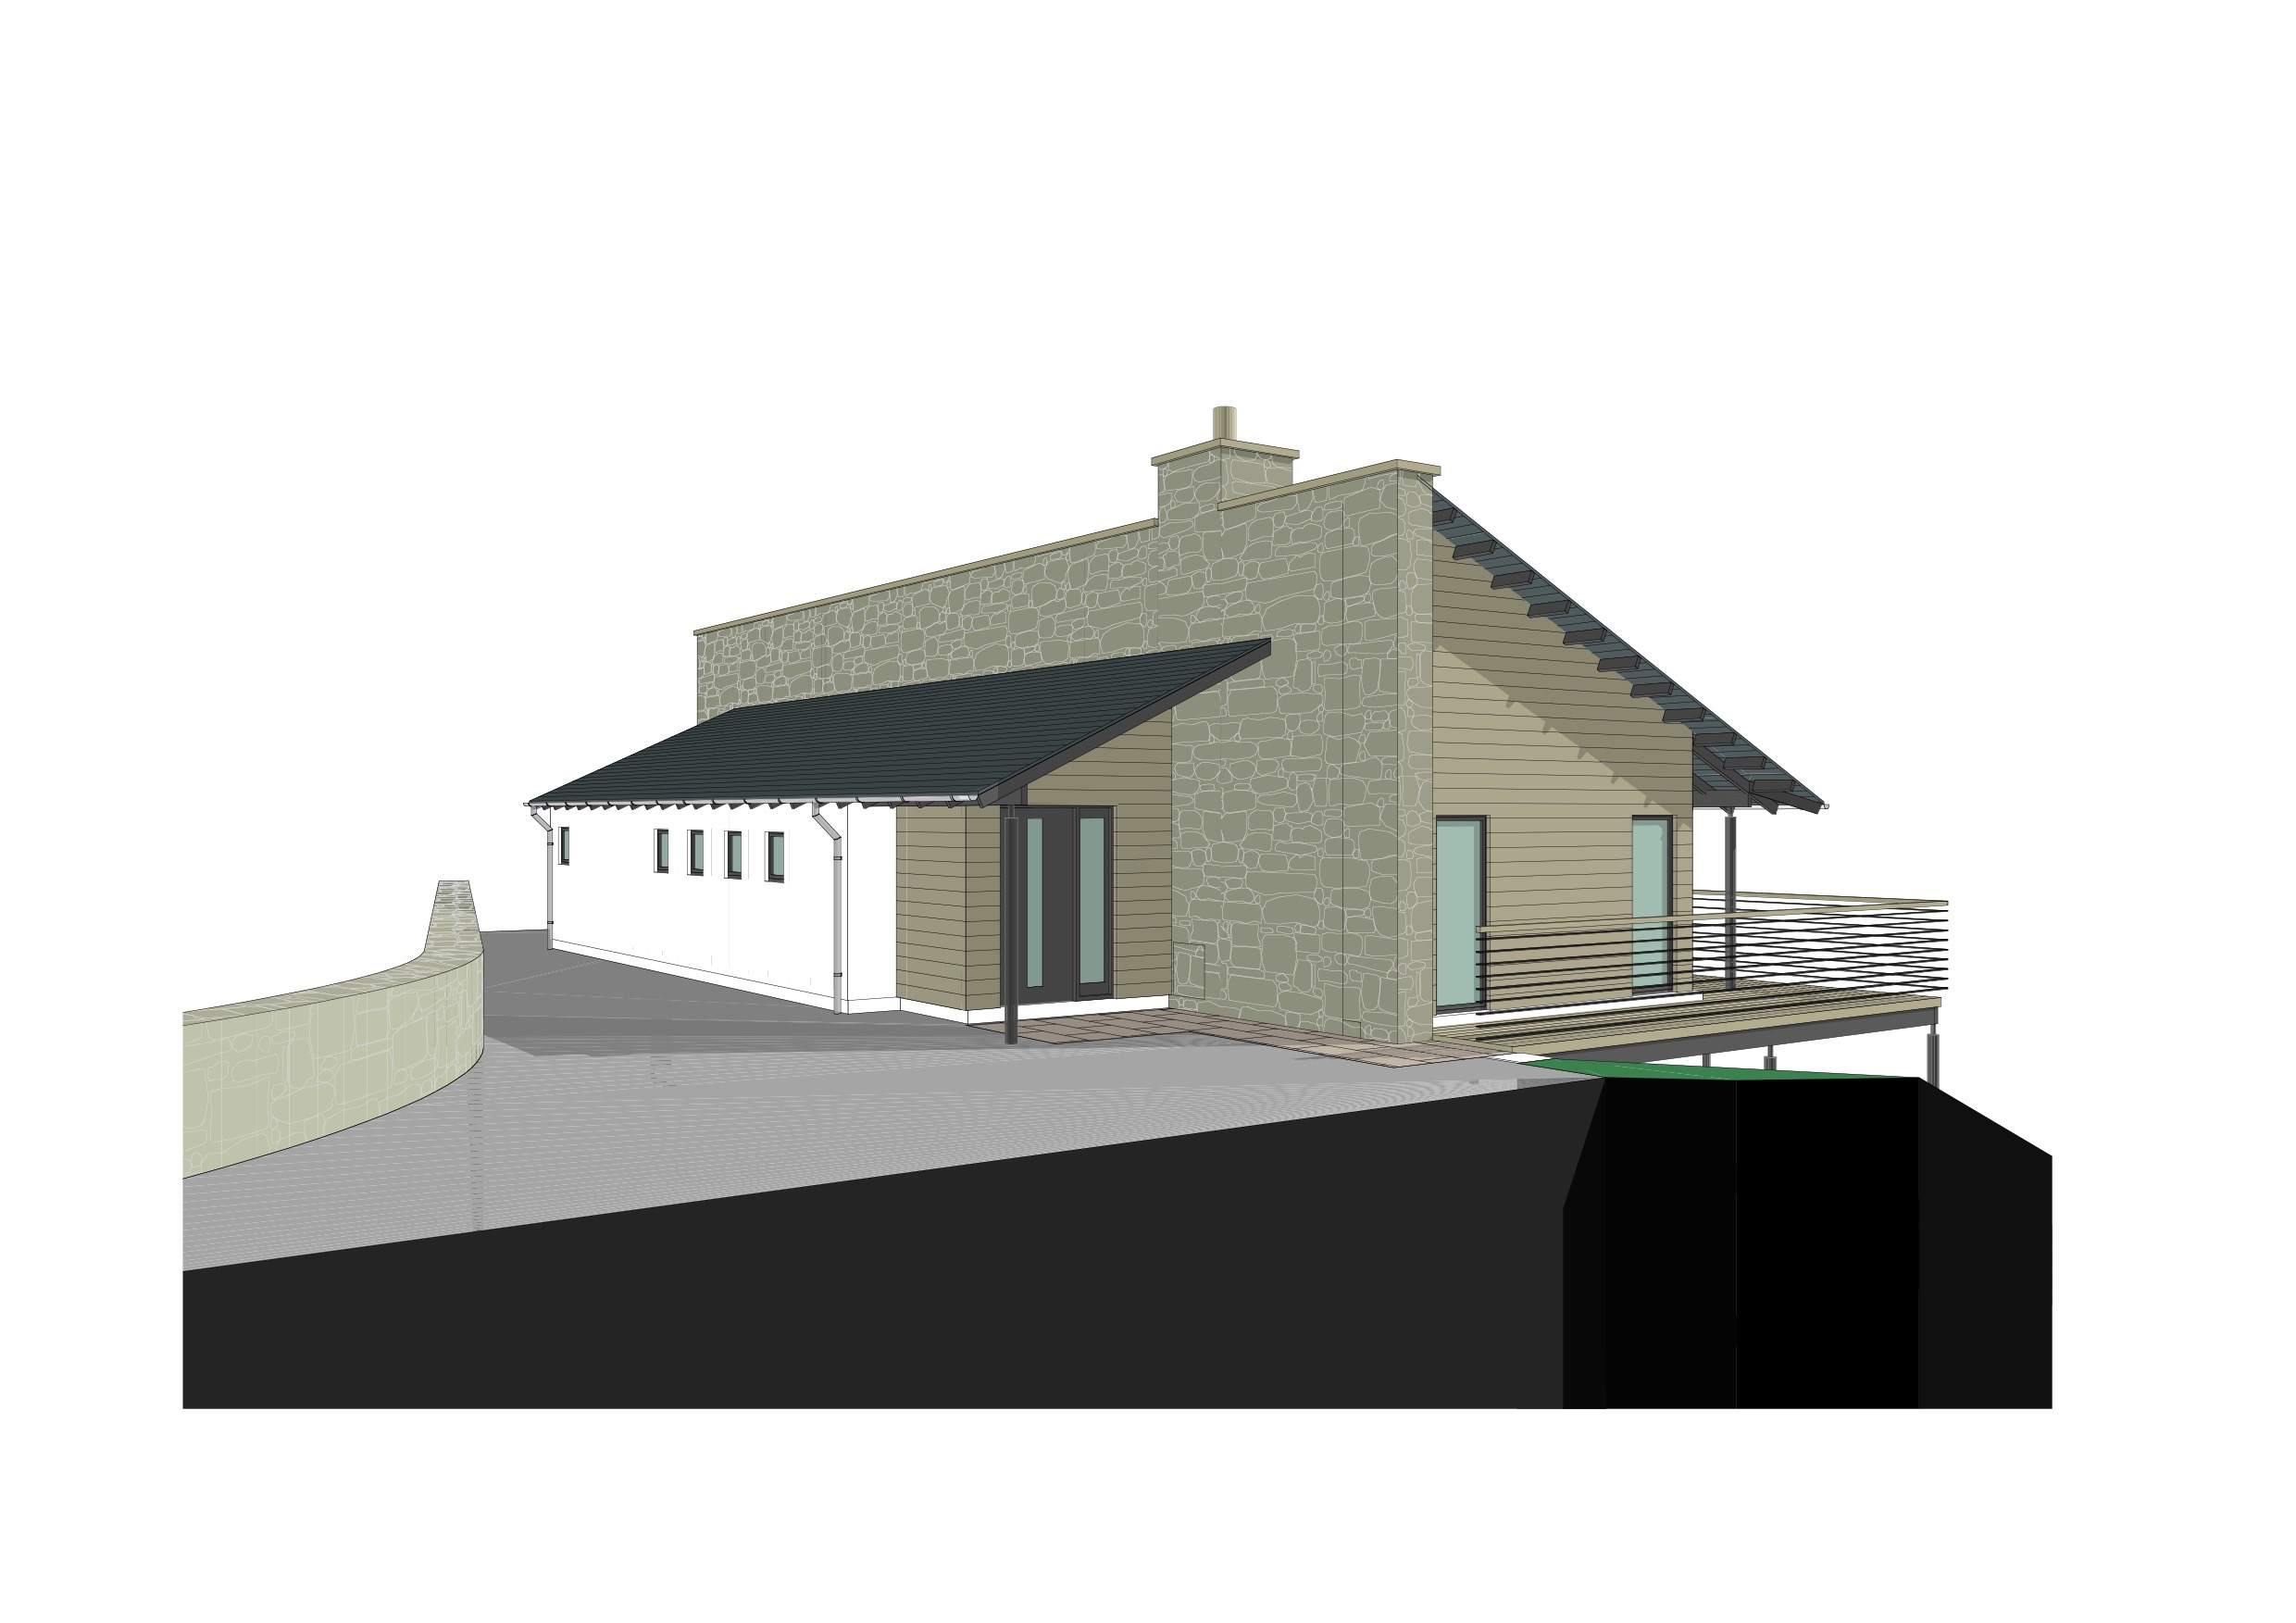 Pair of Dull Houses 2